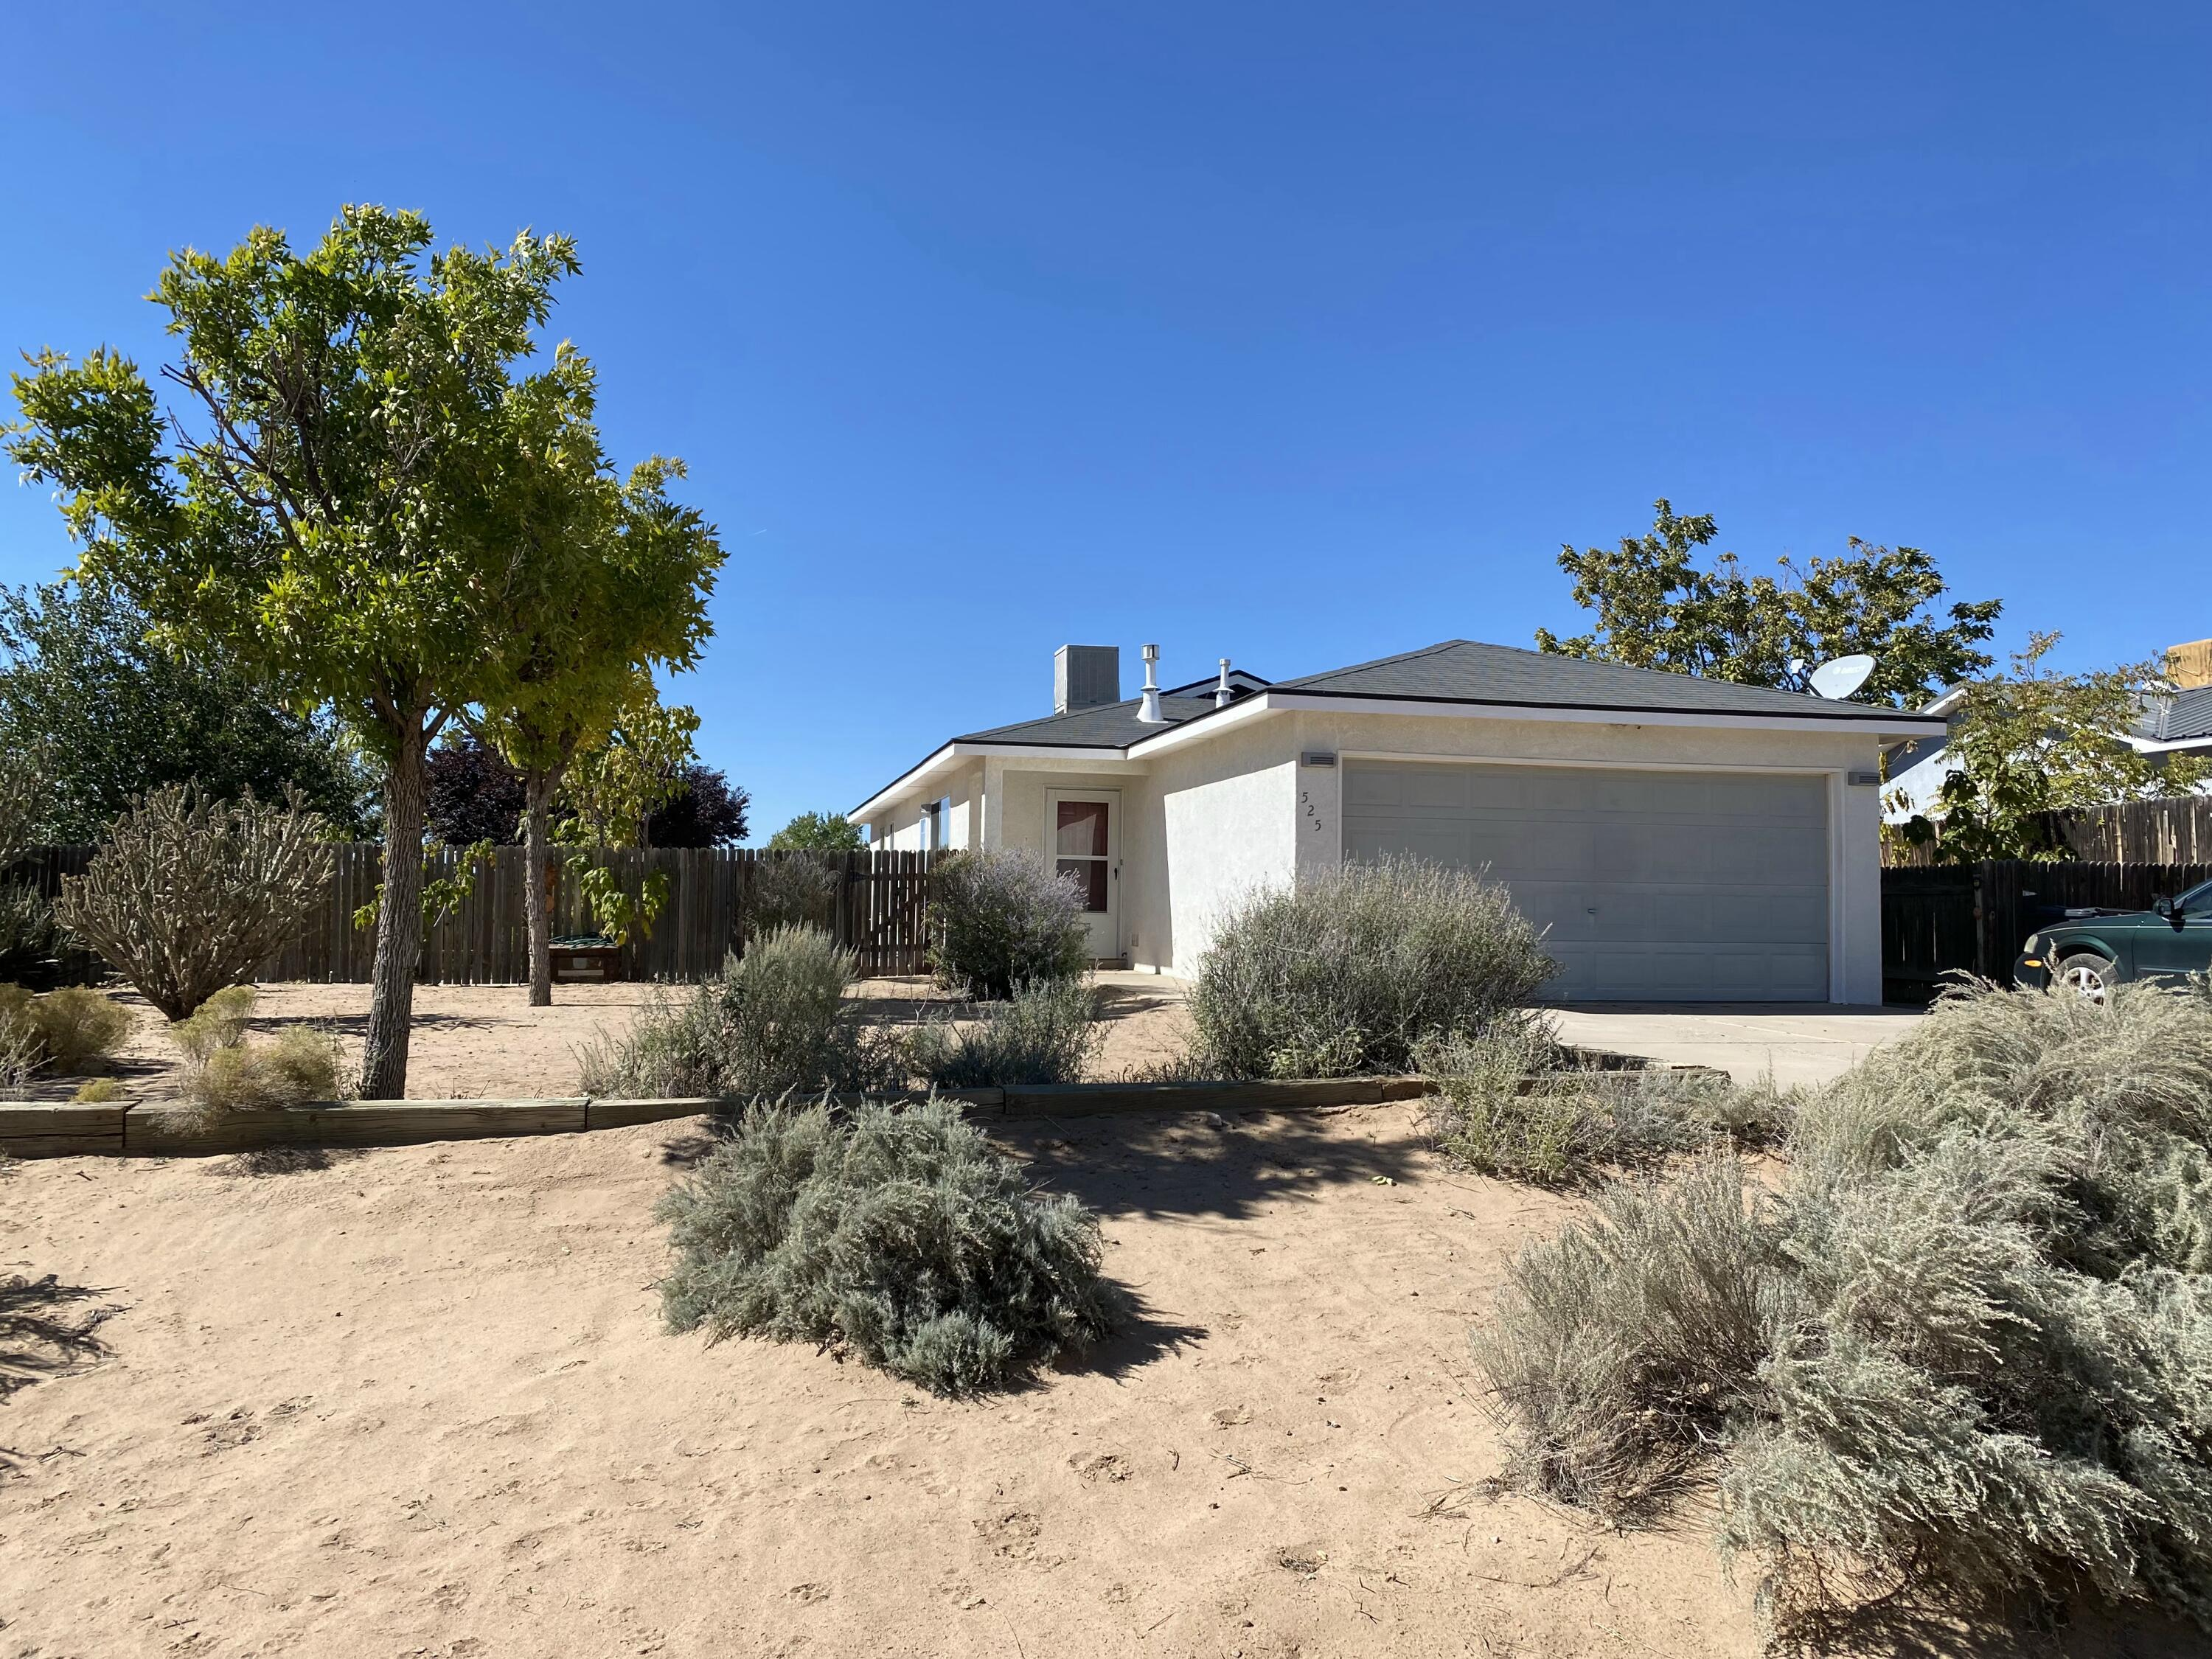 Check out this adorable 3 bedroom 2 bathroom home on a half acre lot! Water heater only 2 yrs. old. Less than a mile from Rainbow dog park and under 2 miles to grocery stores, restaurants, and entertainment.  This is the perfect starter home you have been looking for!  Schedule your showing before it's gone!